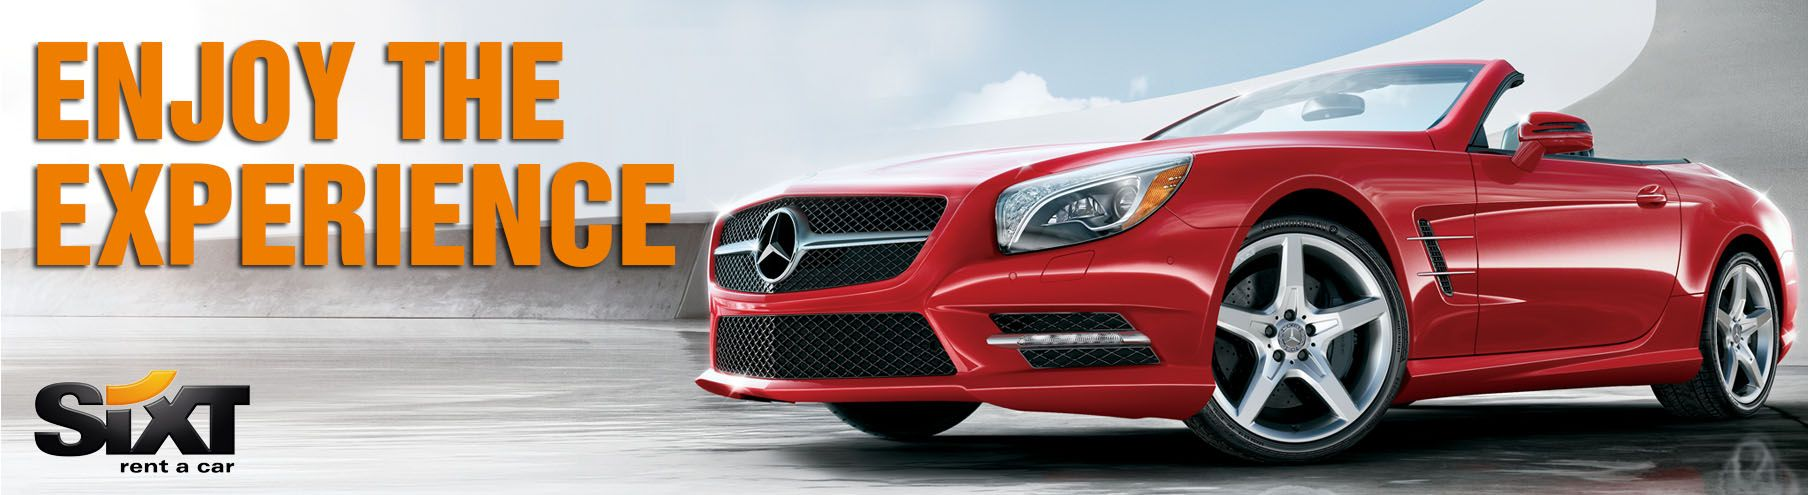 The experience for us is so important. Las Vegas, Sixt